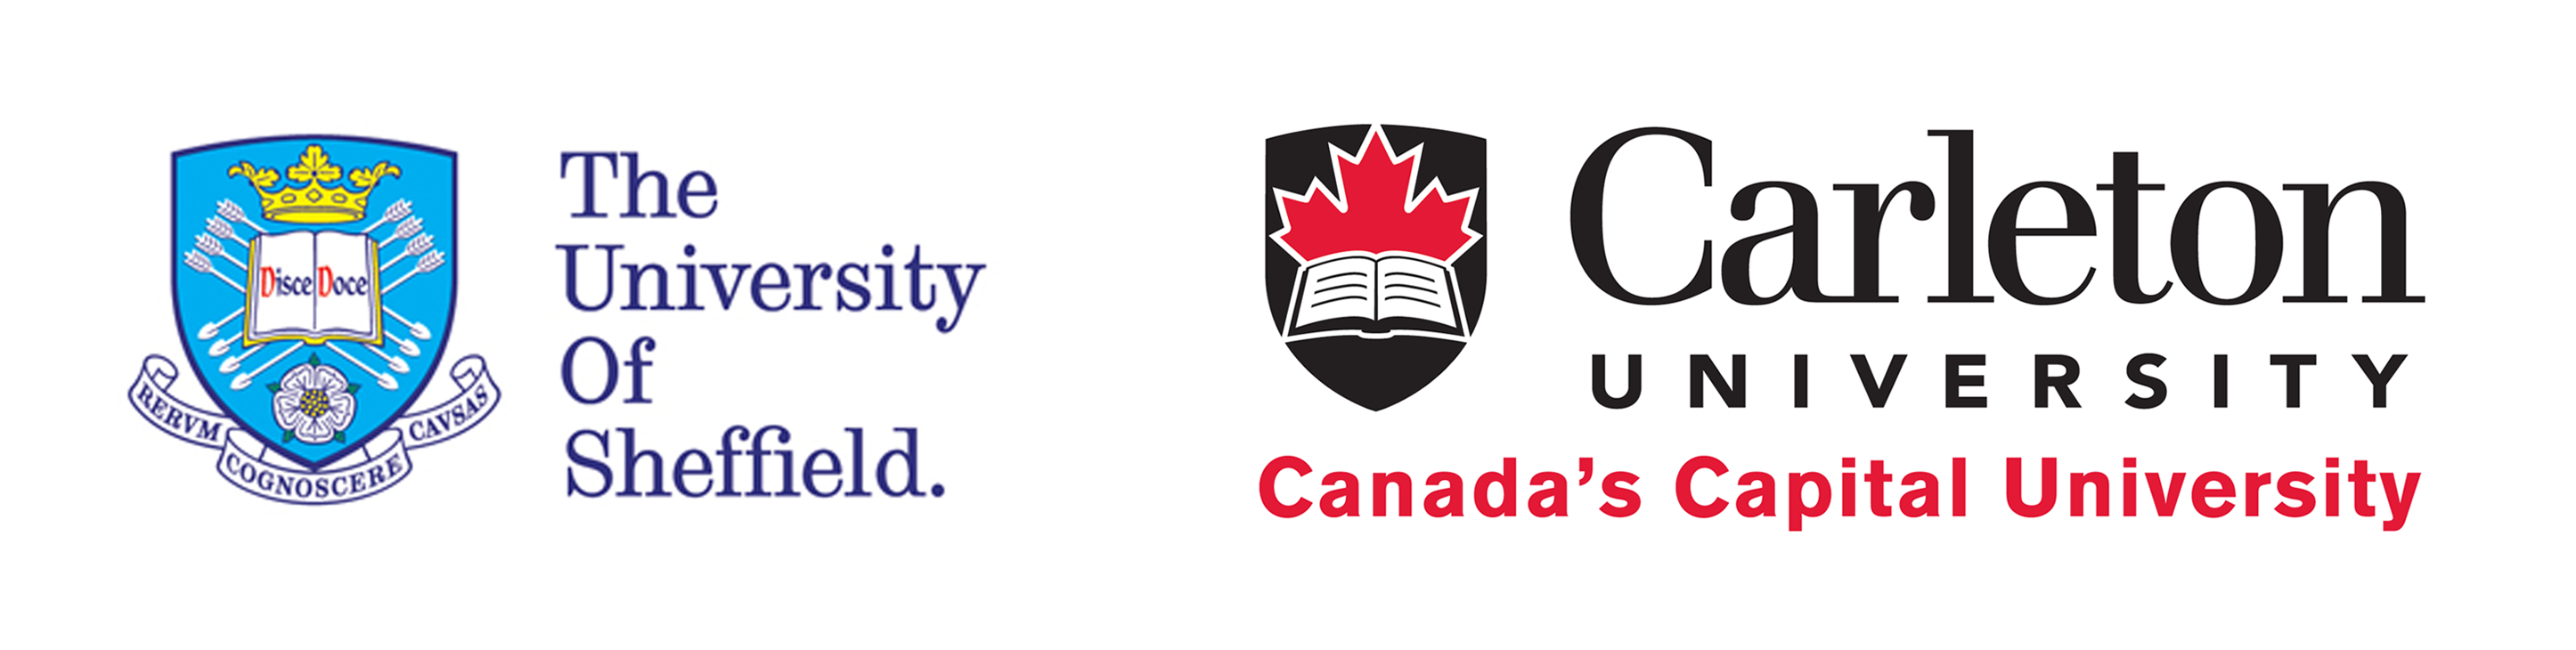 University of Sheffield and Carleton University logos